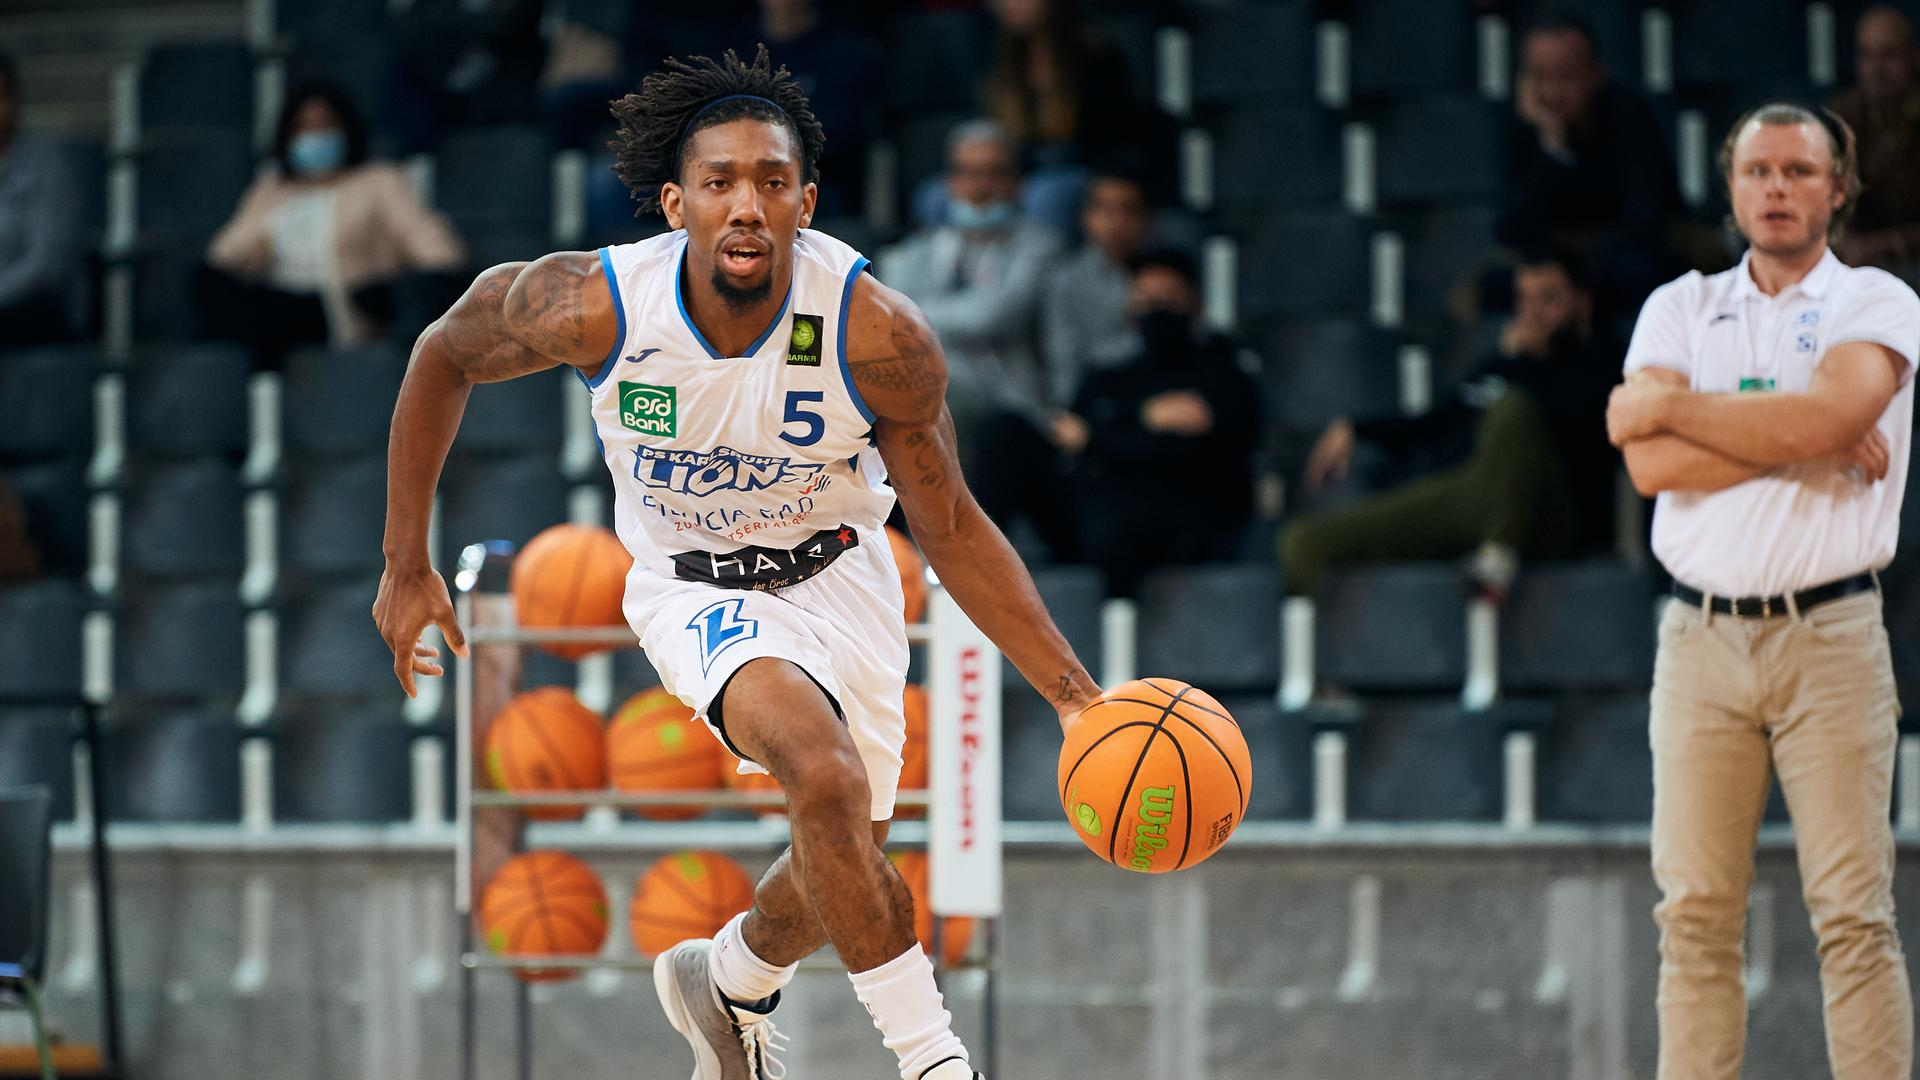 Gregory Clay Foster (Lions) Einzelaktion, Freisteller.  GES/ Basketball/ ProA: PSK Lions - WWU Baskets Muenster, 10.10.2020 --